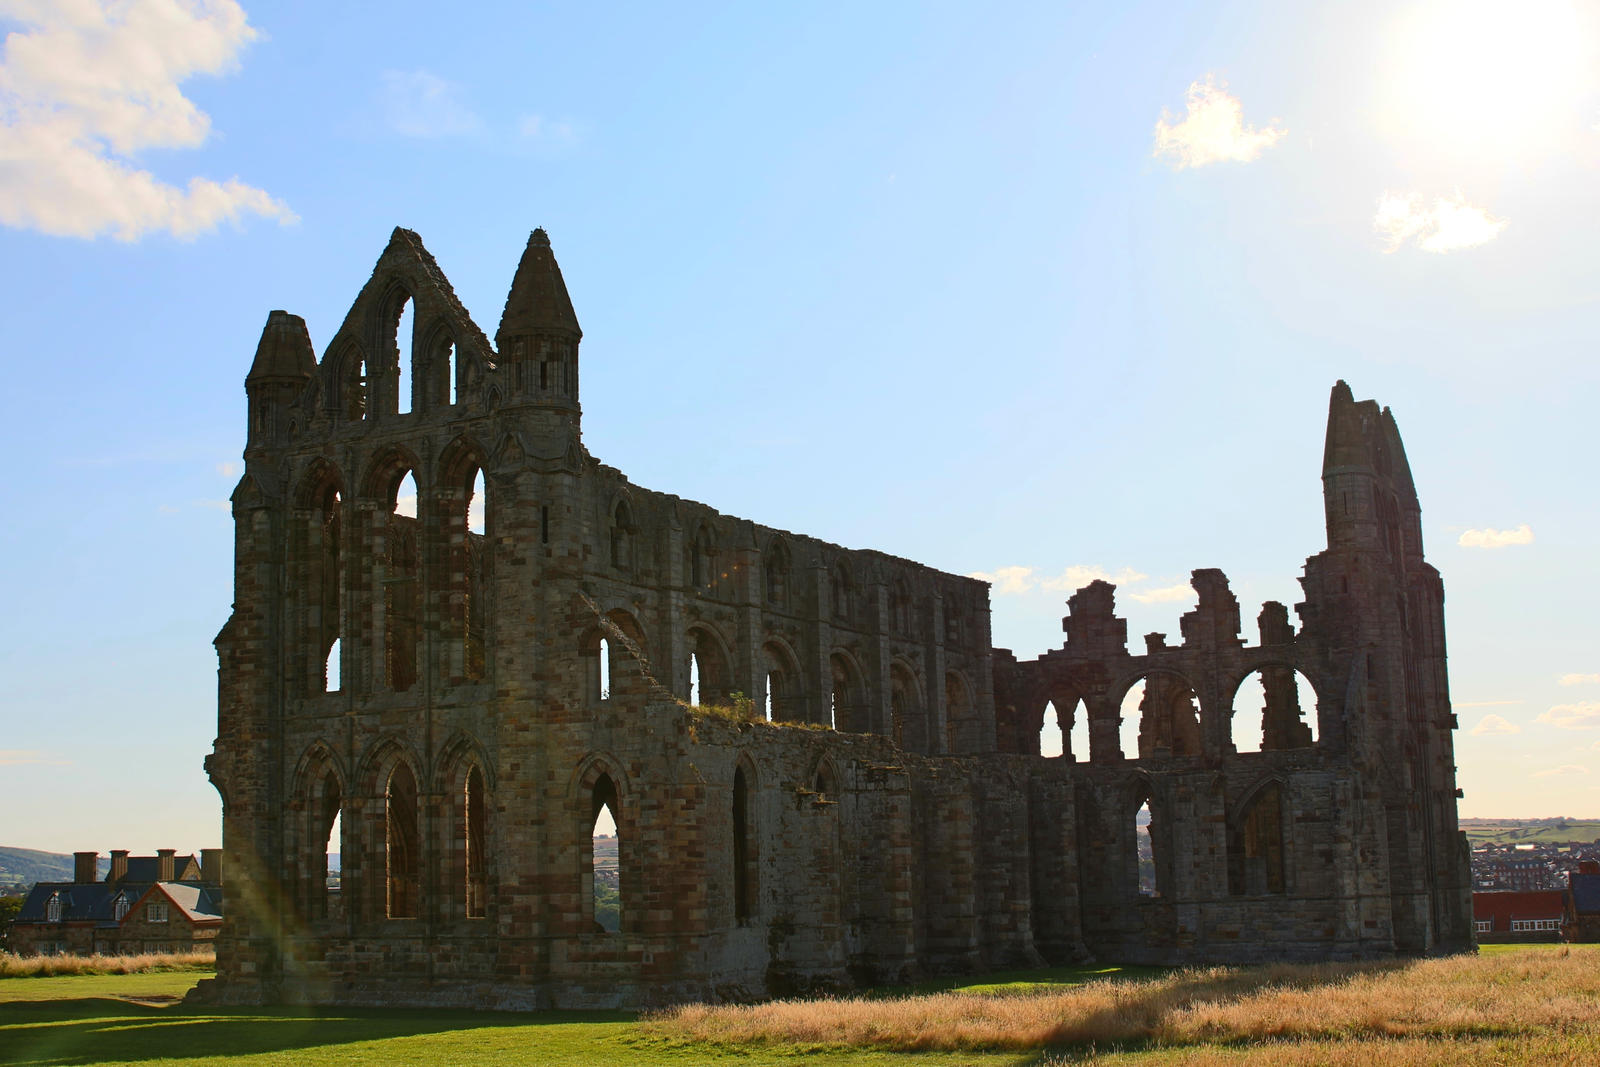 Ruin of a Castle at Whitby by LoveForDetails